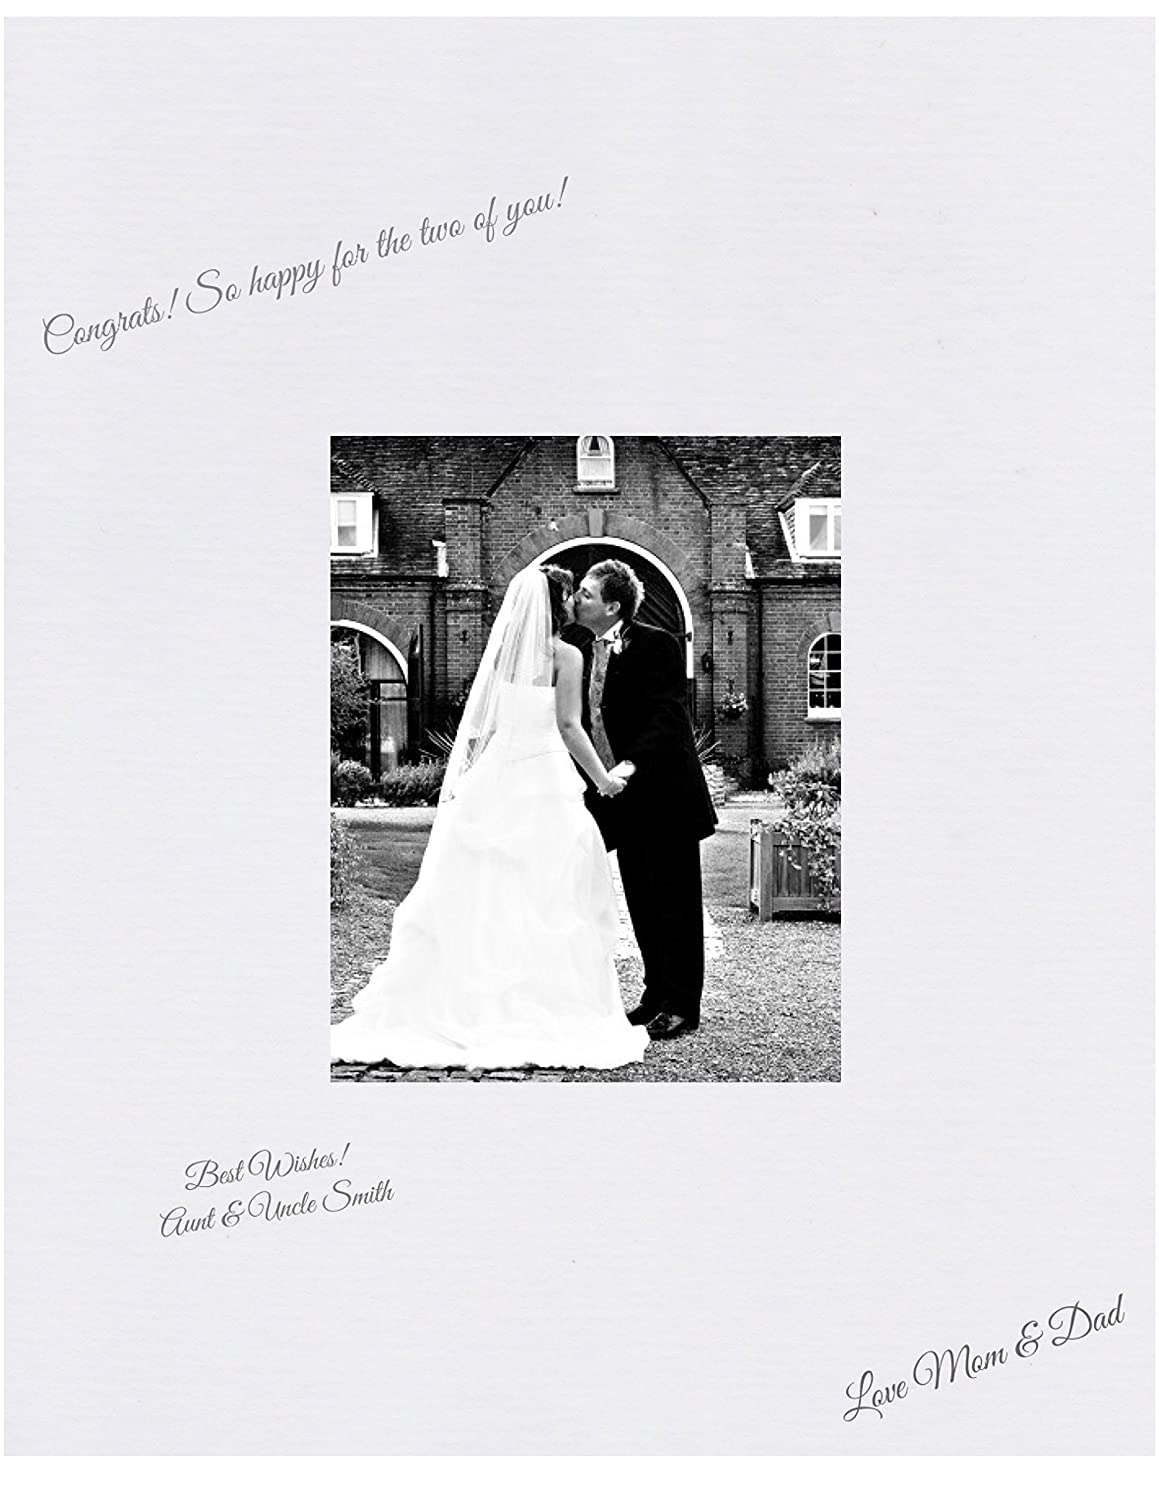 Weddings Reunions 18x24 White Signature and Autograph Picture Mat for 11x14 picture Baby Showers